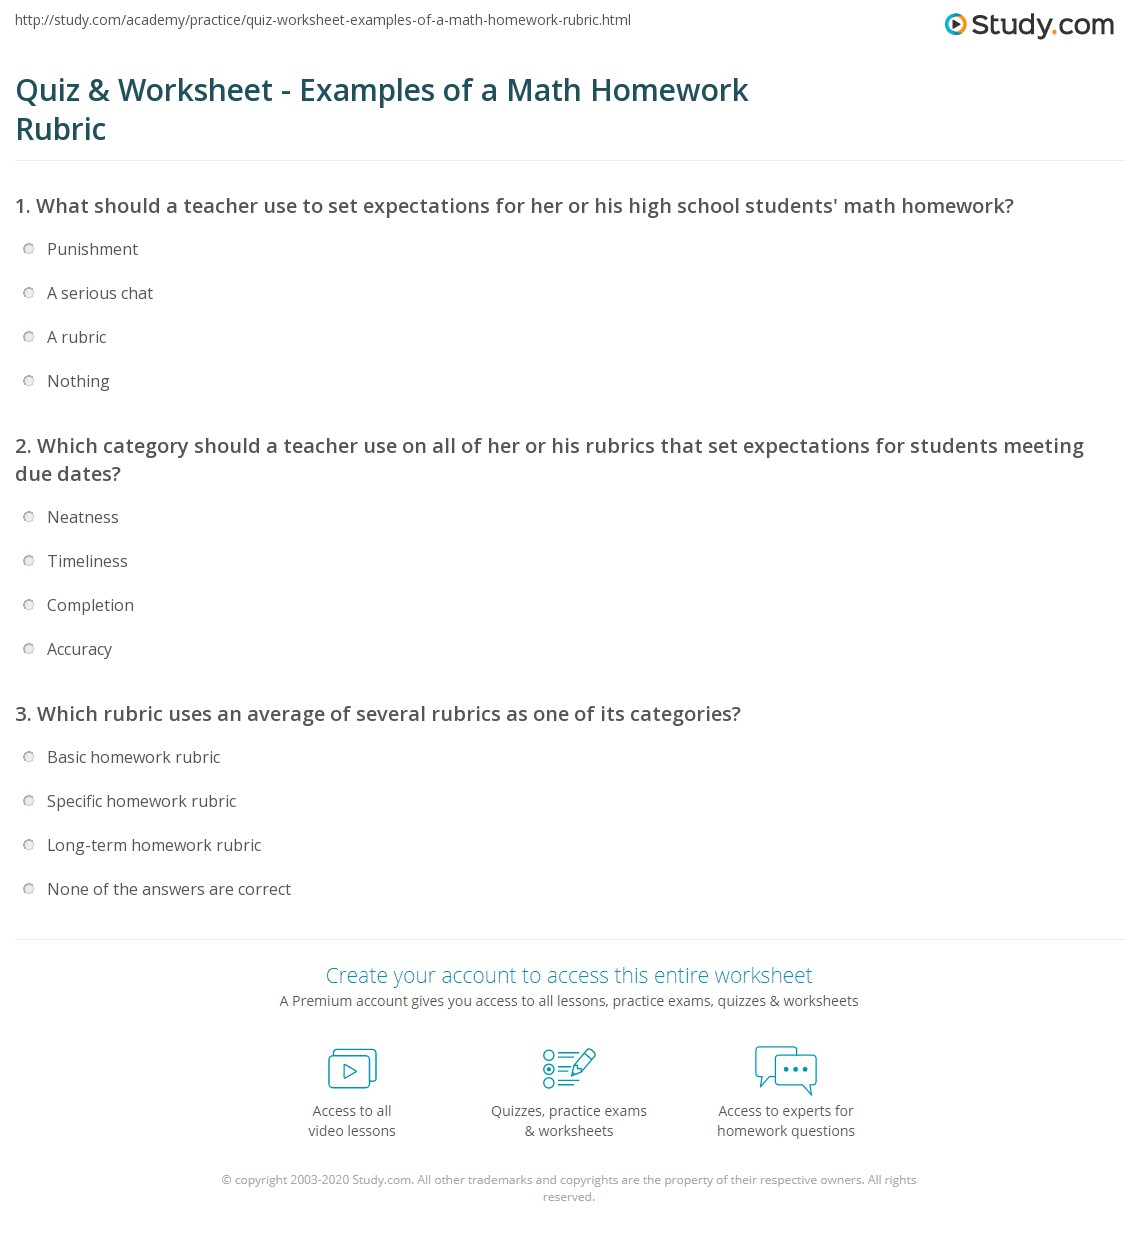 Quiz & Worksheet - Examples of a Math Homework Rubric | Study.com